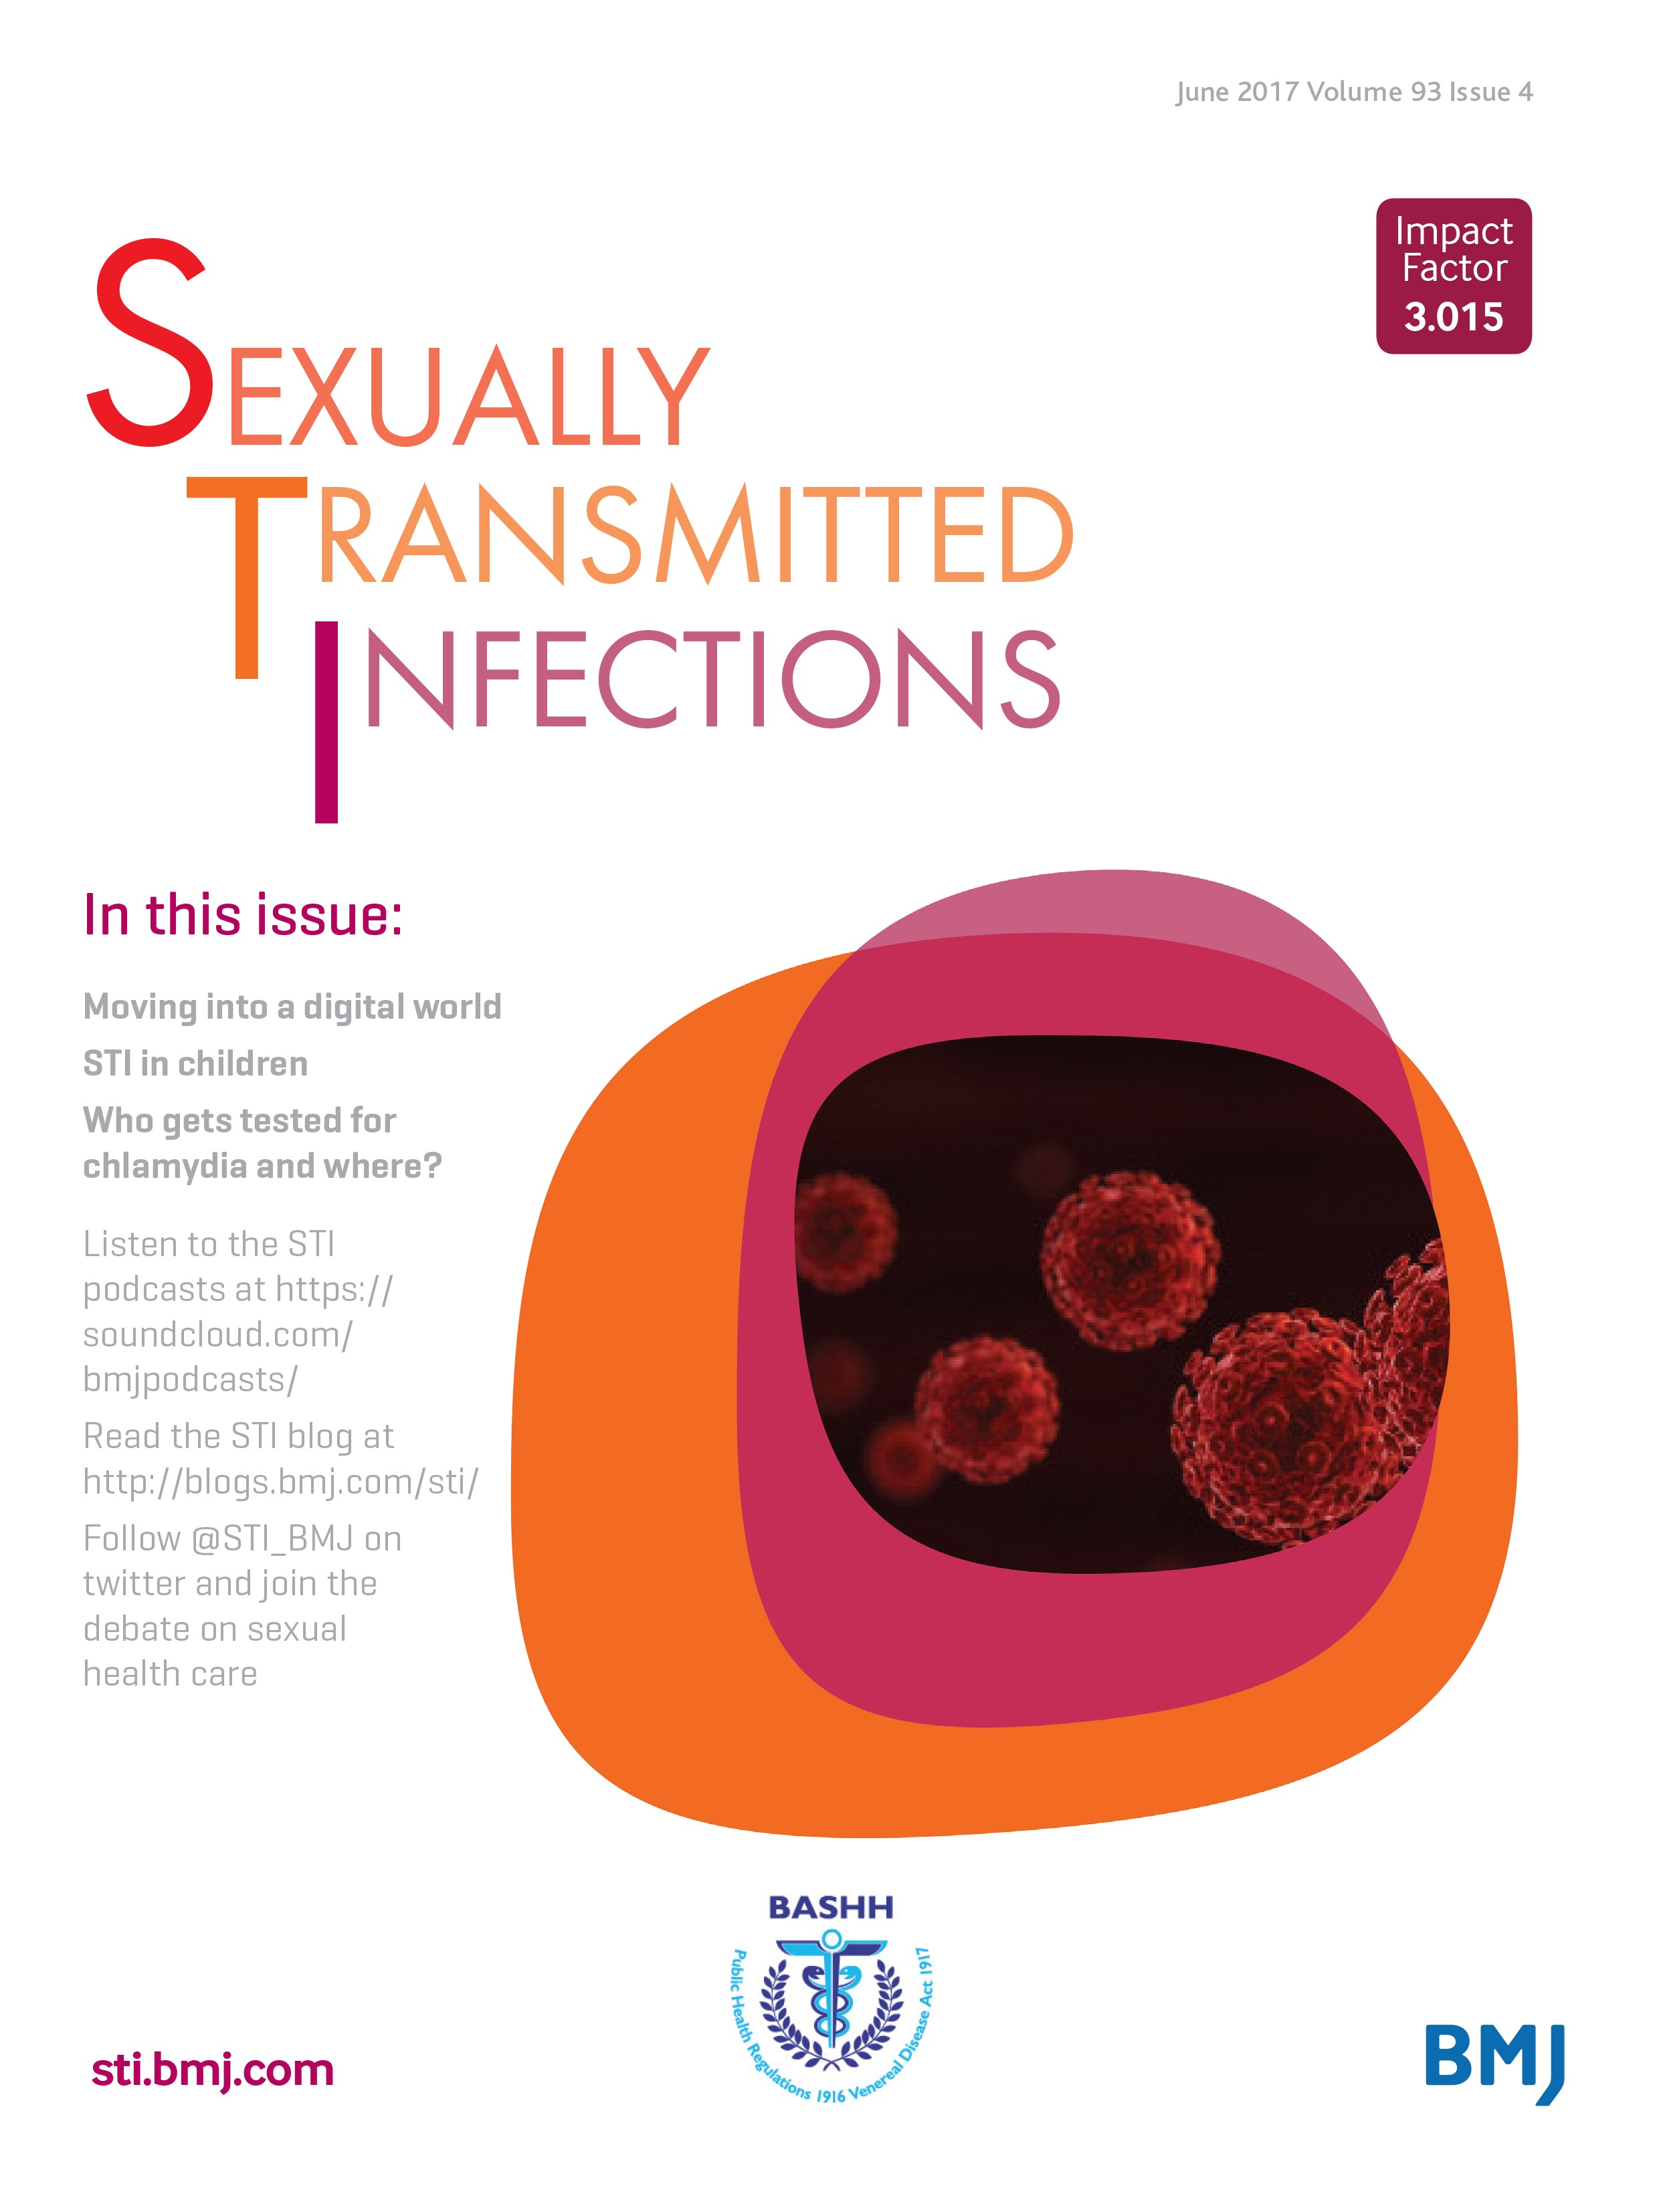 Health education on sexually transmitted infections ppt